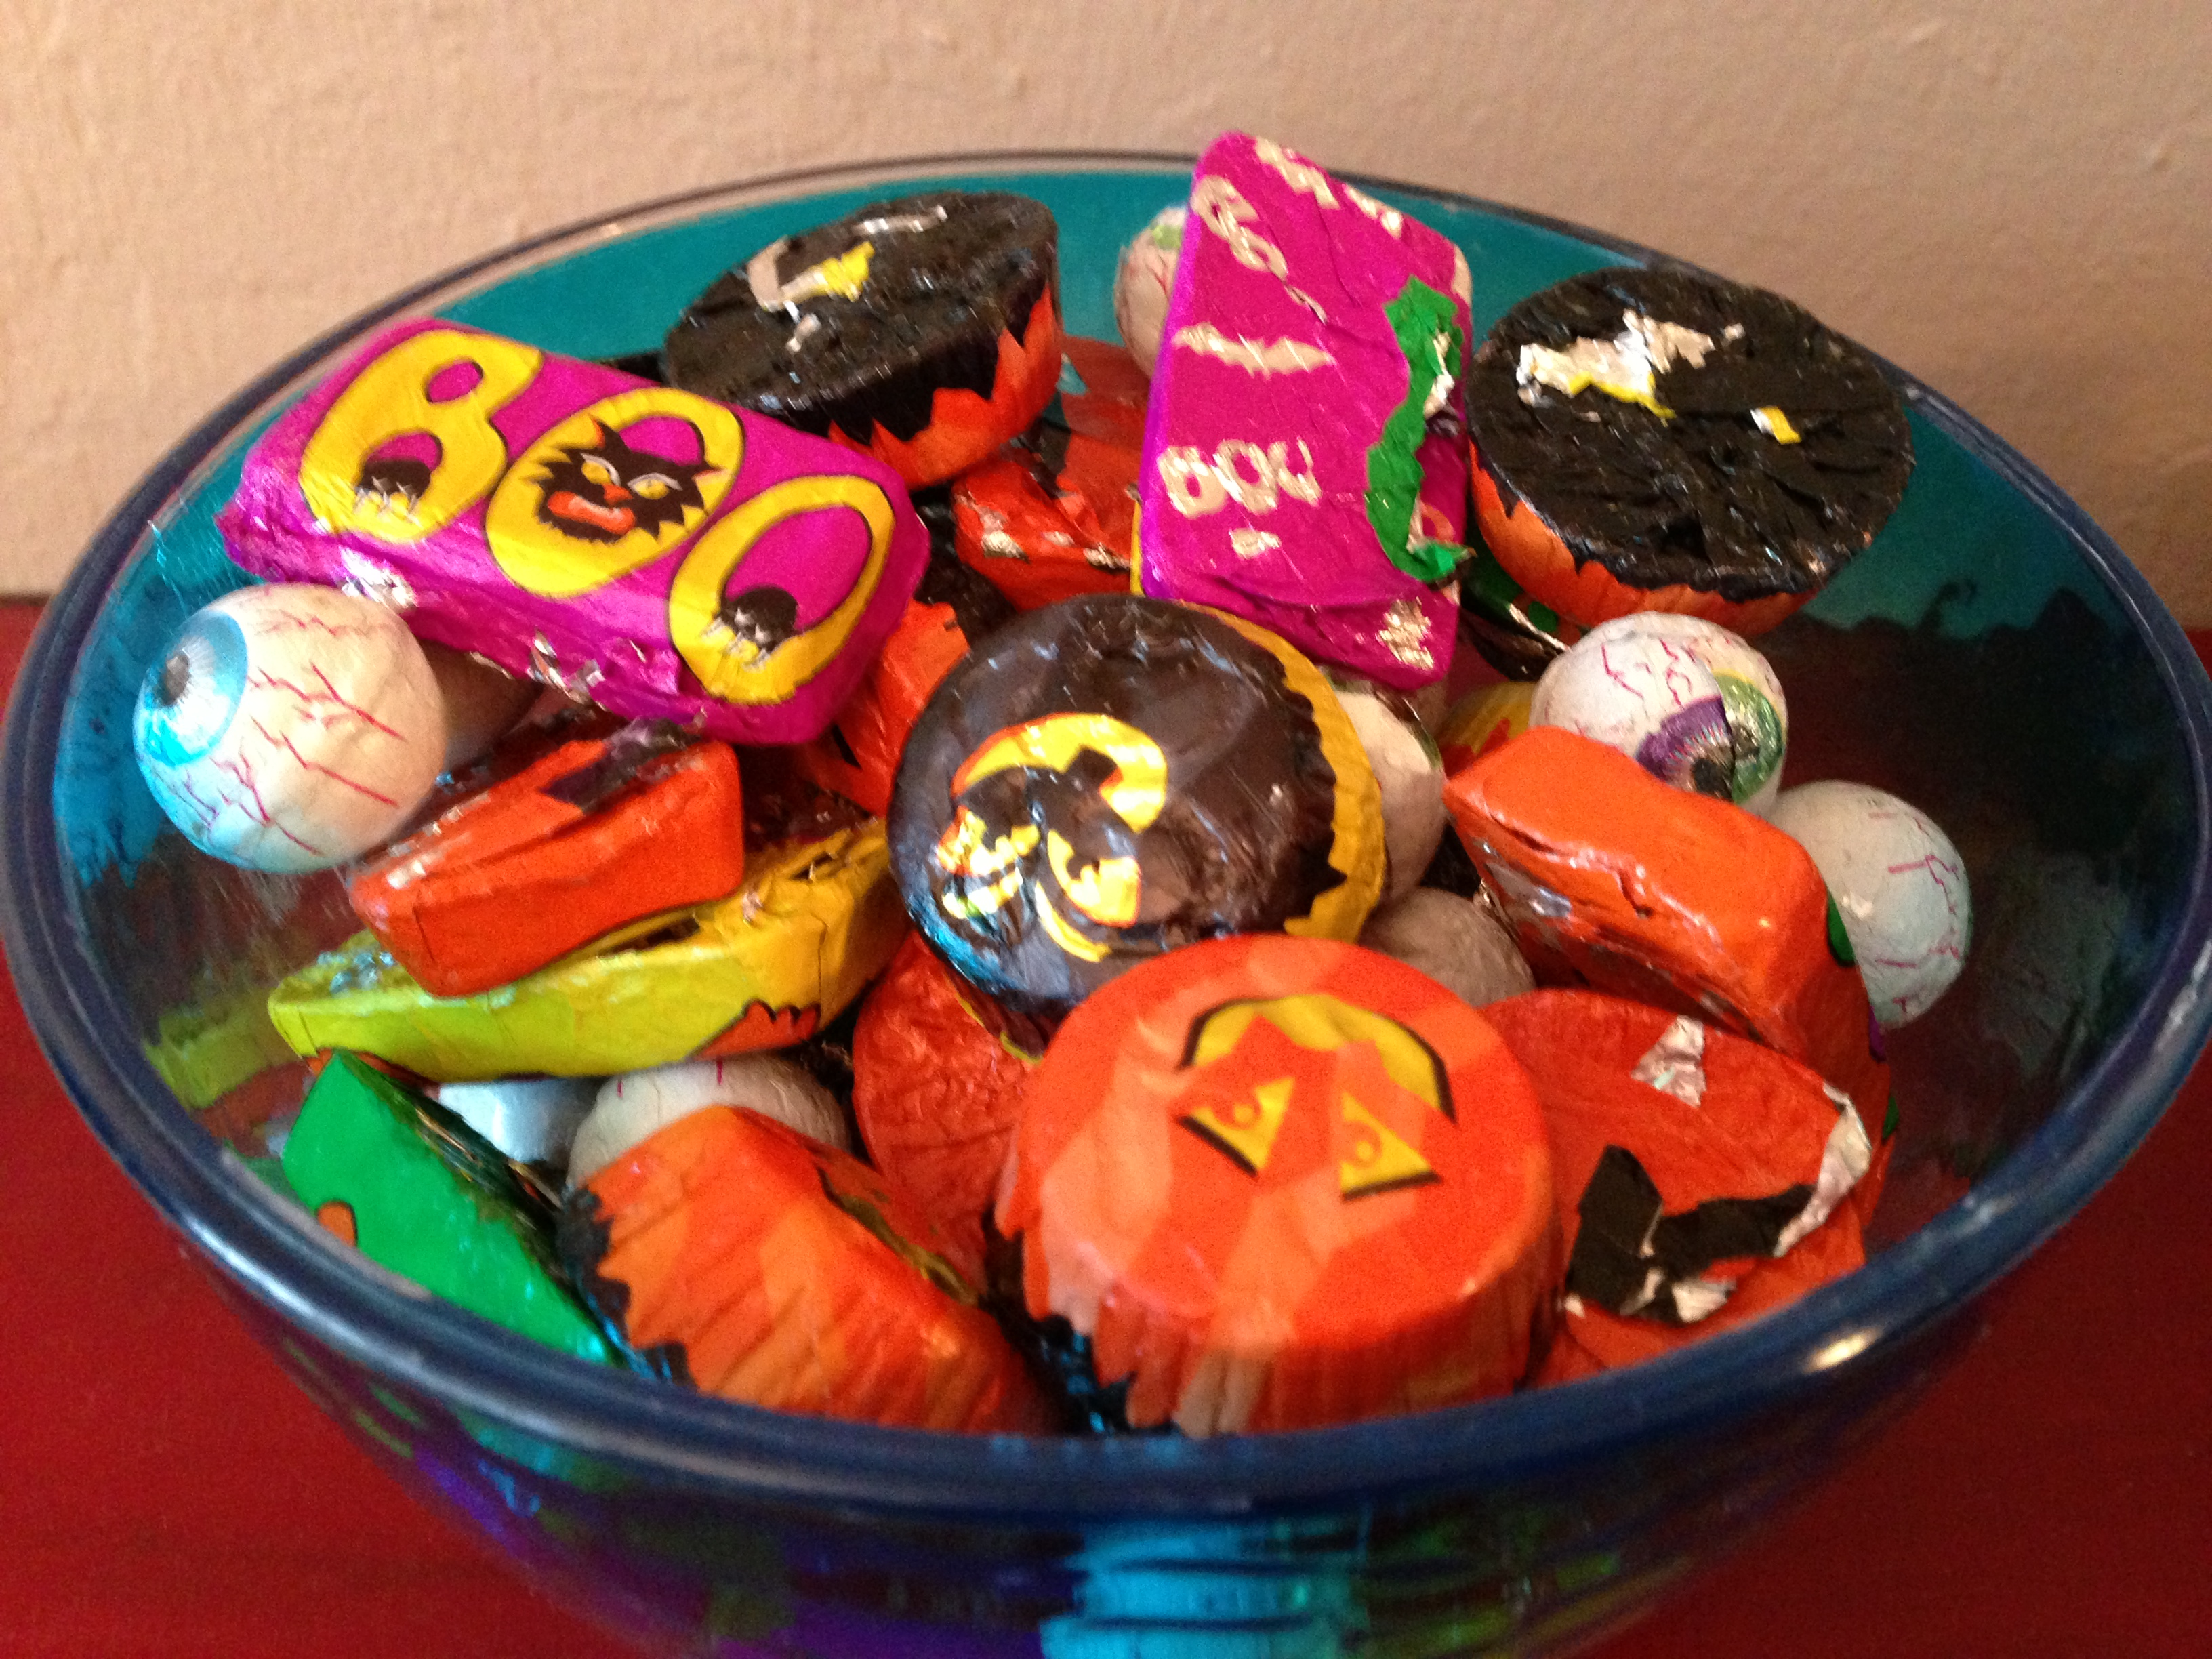 Today's Hint: 3 Tricks for Curtailing Your Child's Candy Consumption This Halloween